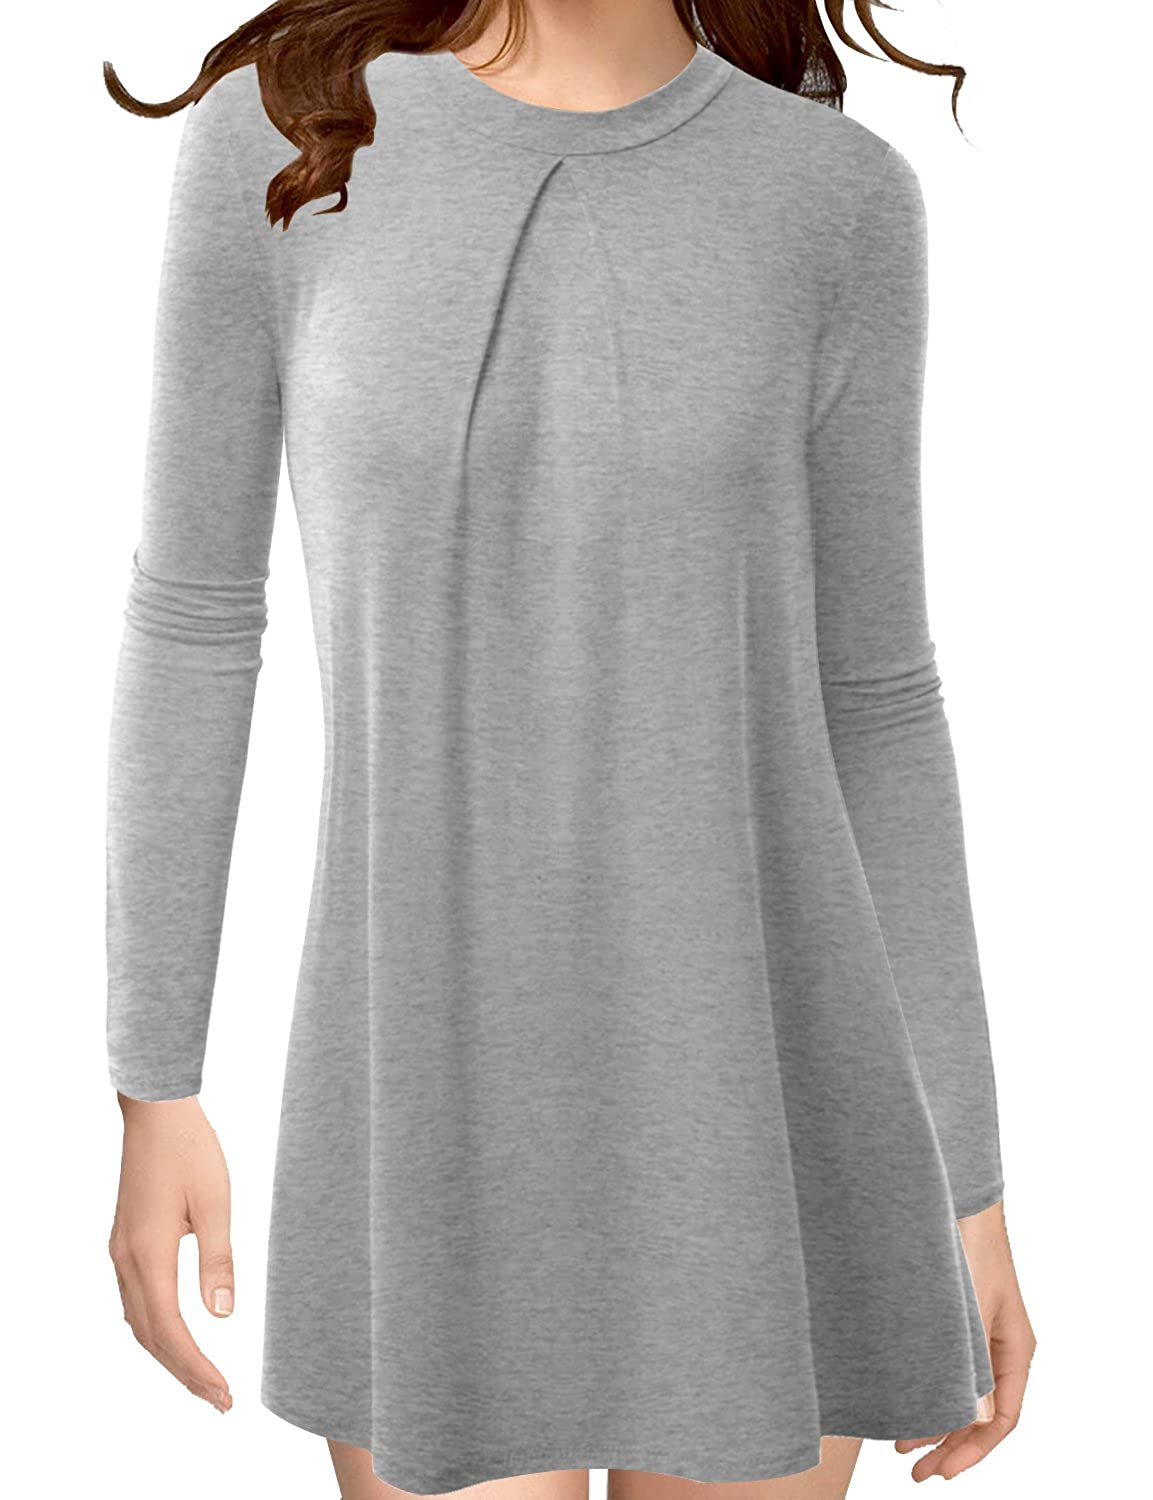 TWINTH Loose Fit Tunic Top High Neck Longsleeve Pleats Plus Size NEWCWTTL0120